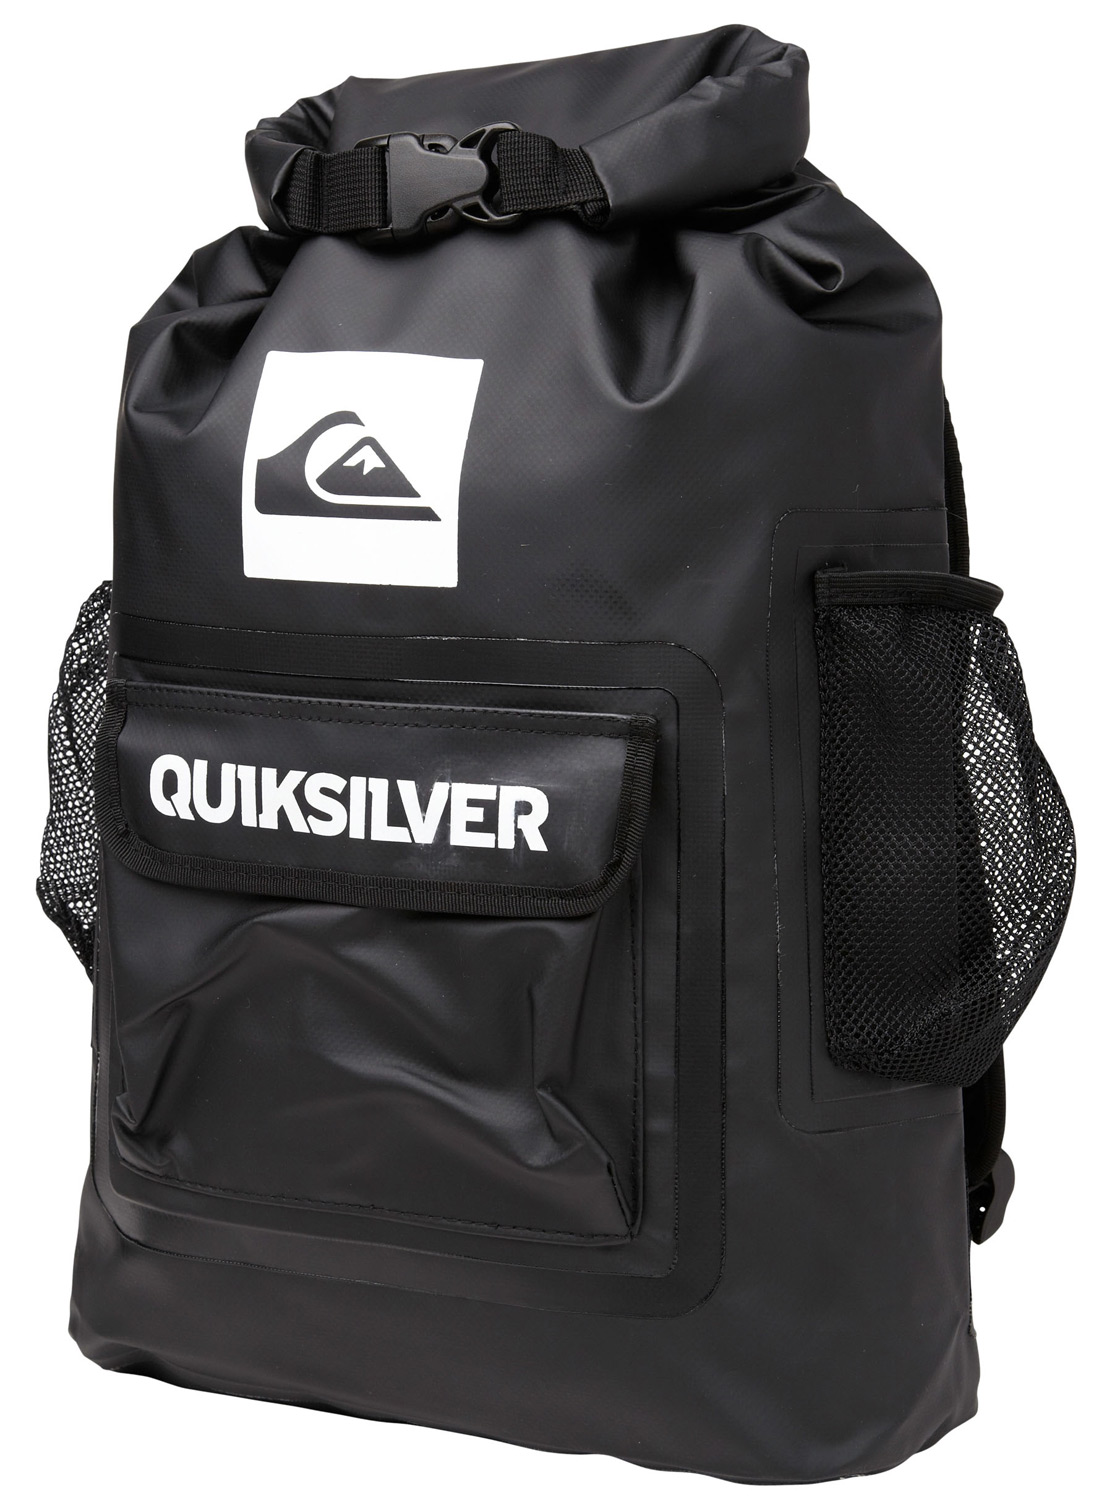 "Surf Key Features of the Quiksilver Sea Stash Backpack 20L: Volume: 20L Size: 19""x12""x5"" Seam sealed tarpaulin Roll top sealable dry bag Front pocket with velcro closure 2 exterior mesh side storage pockets Airmesh padded shoulder straps - $55.00"